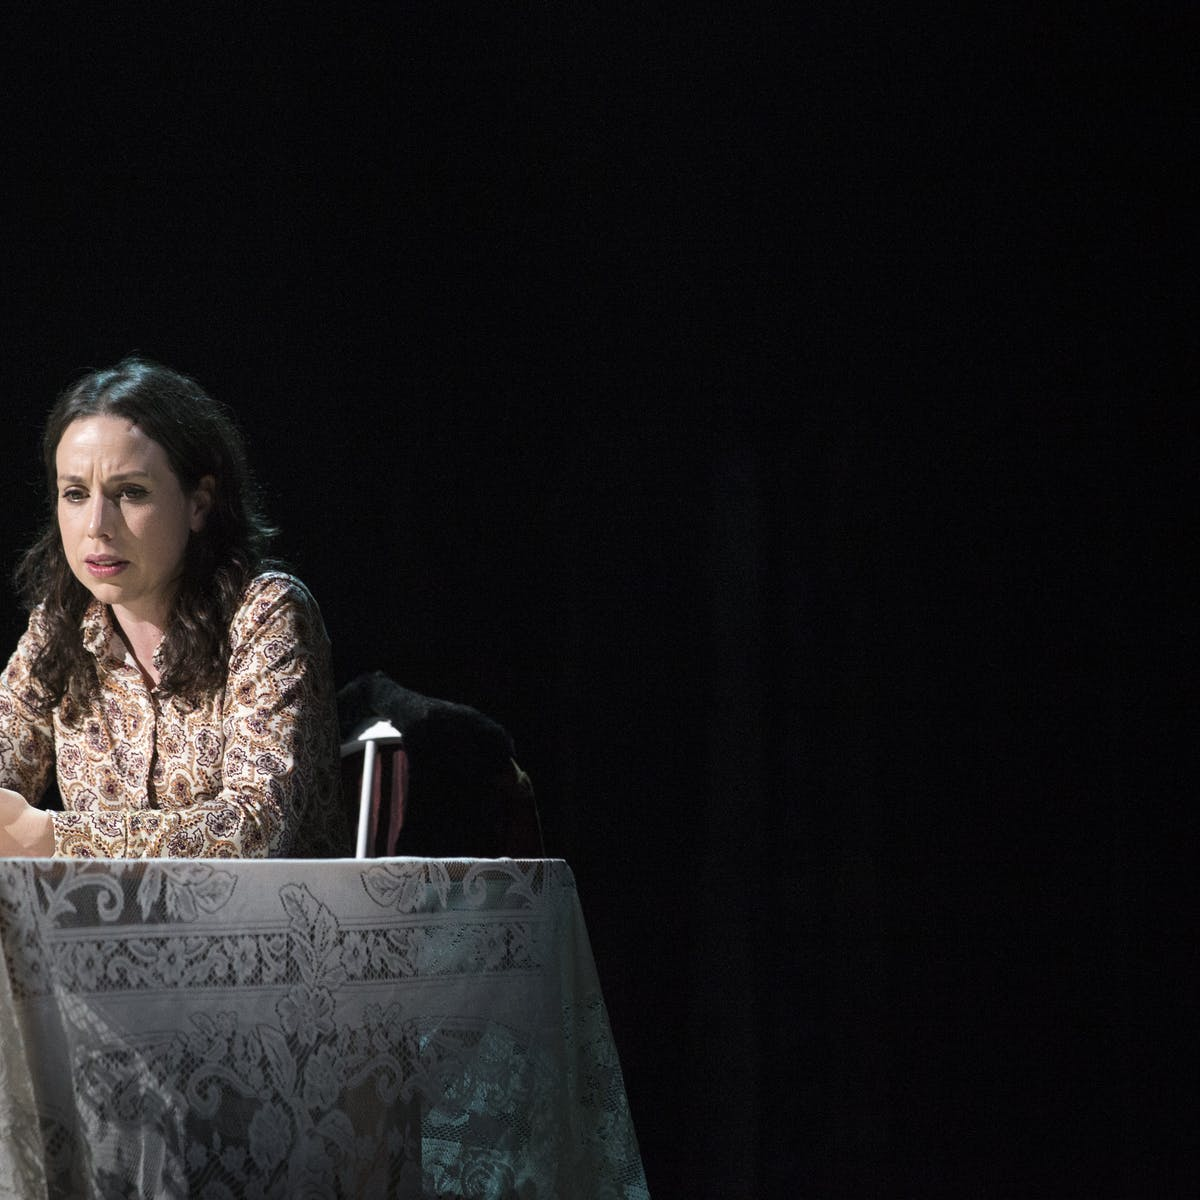 Betrayal by Harold Pinter, and our betrayal of ourselves